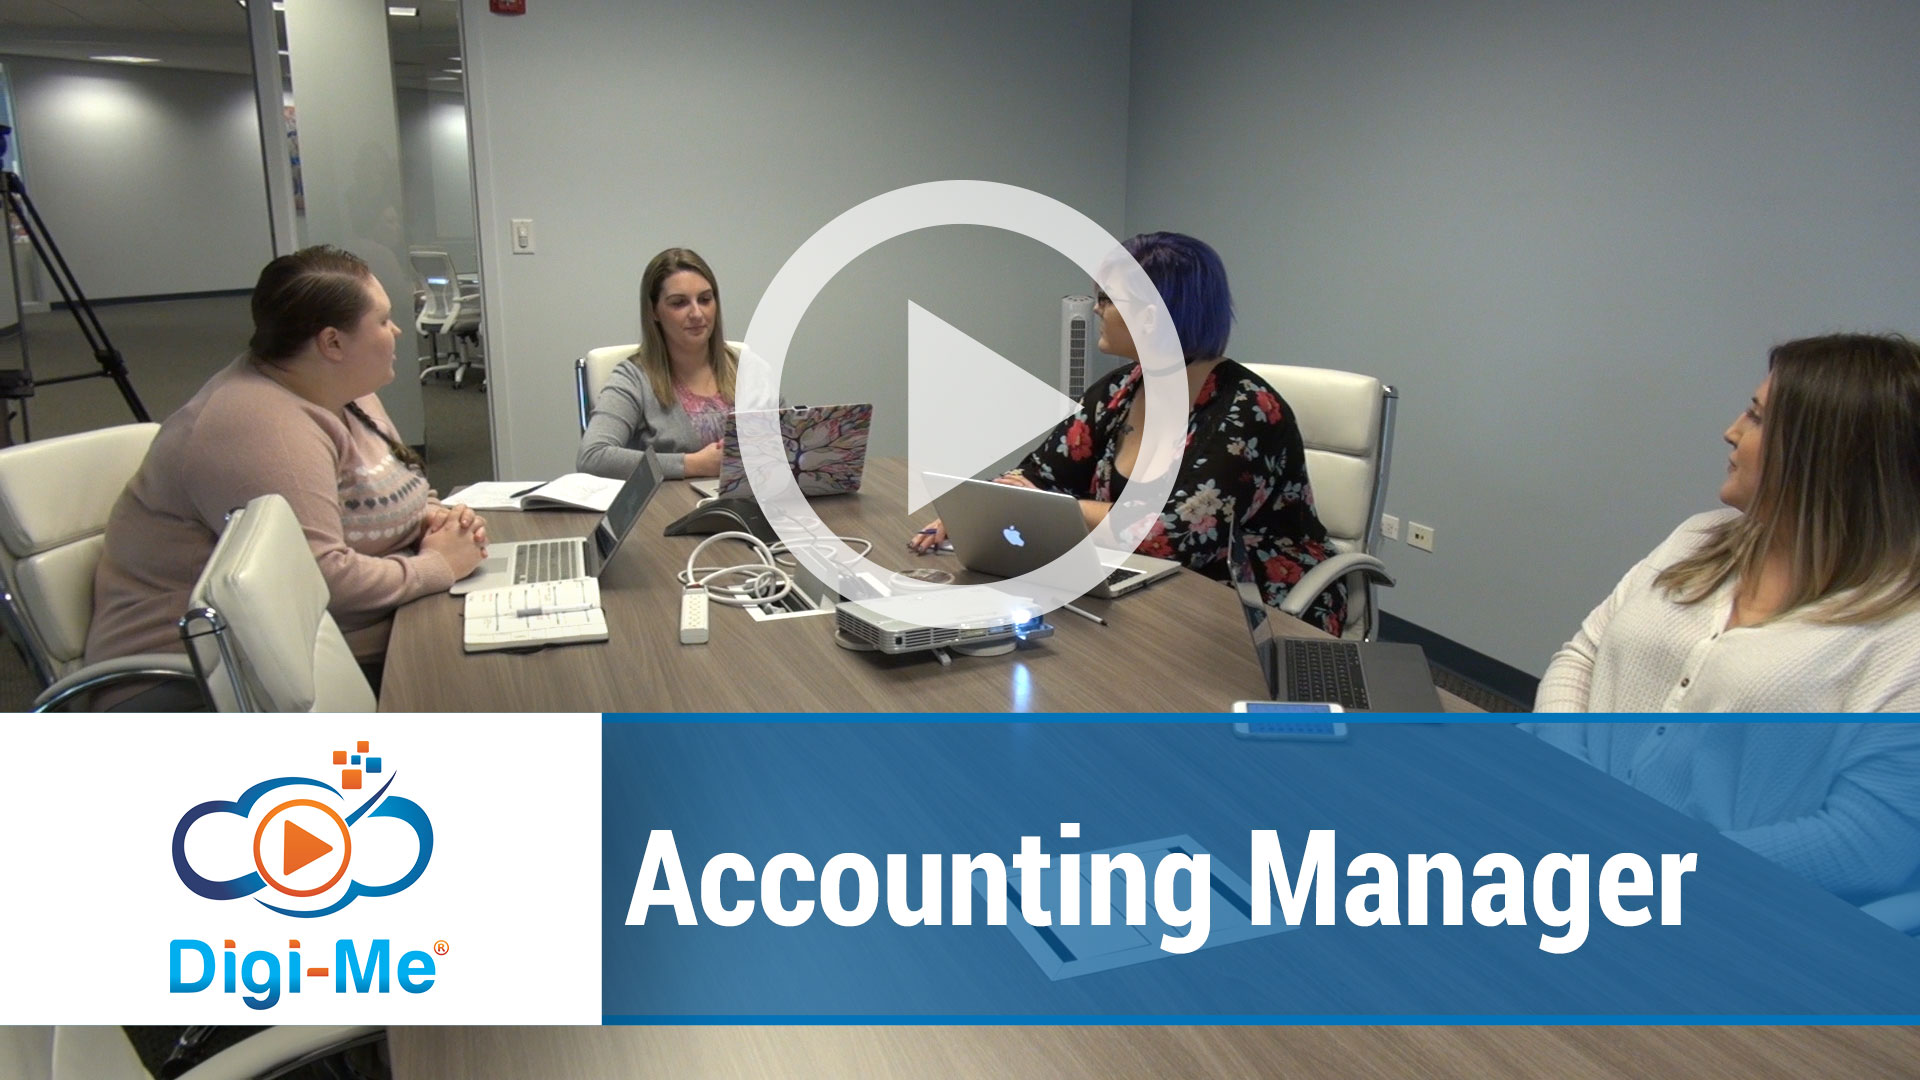 Watch our careers video for available job opening Accounting Manager in Naperville, Illinois